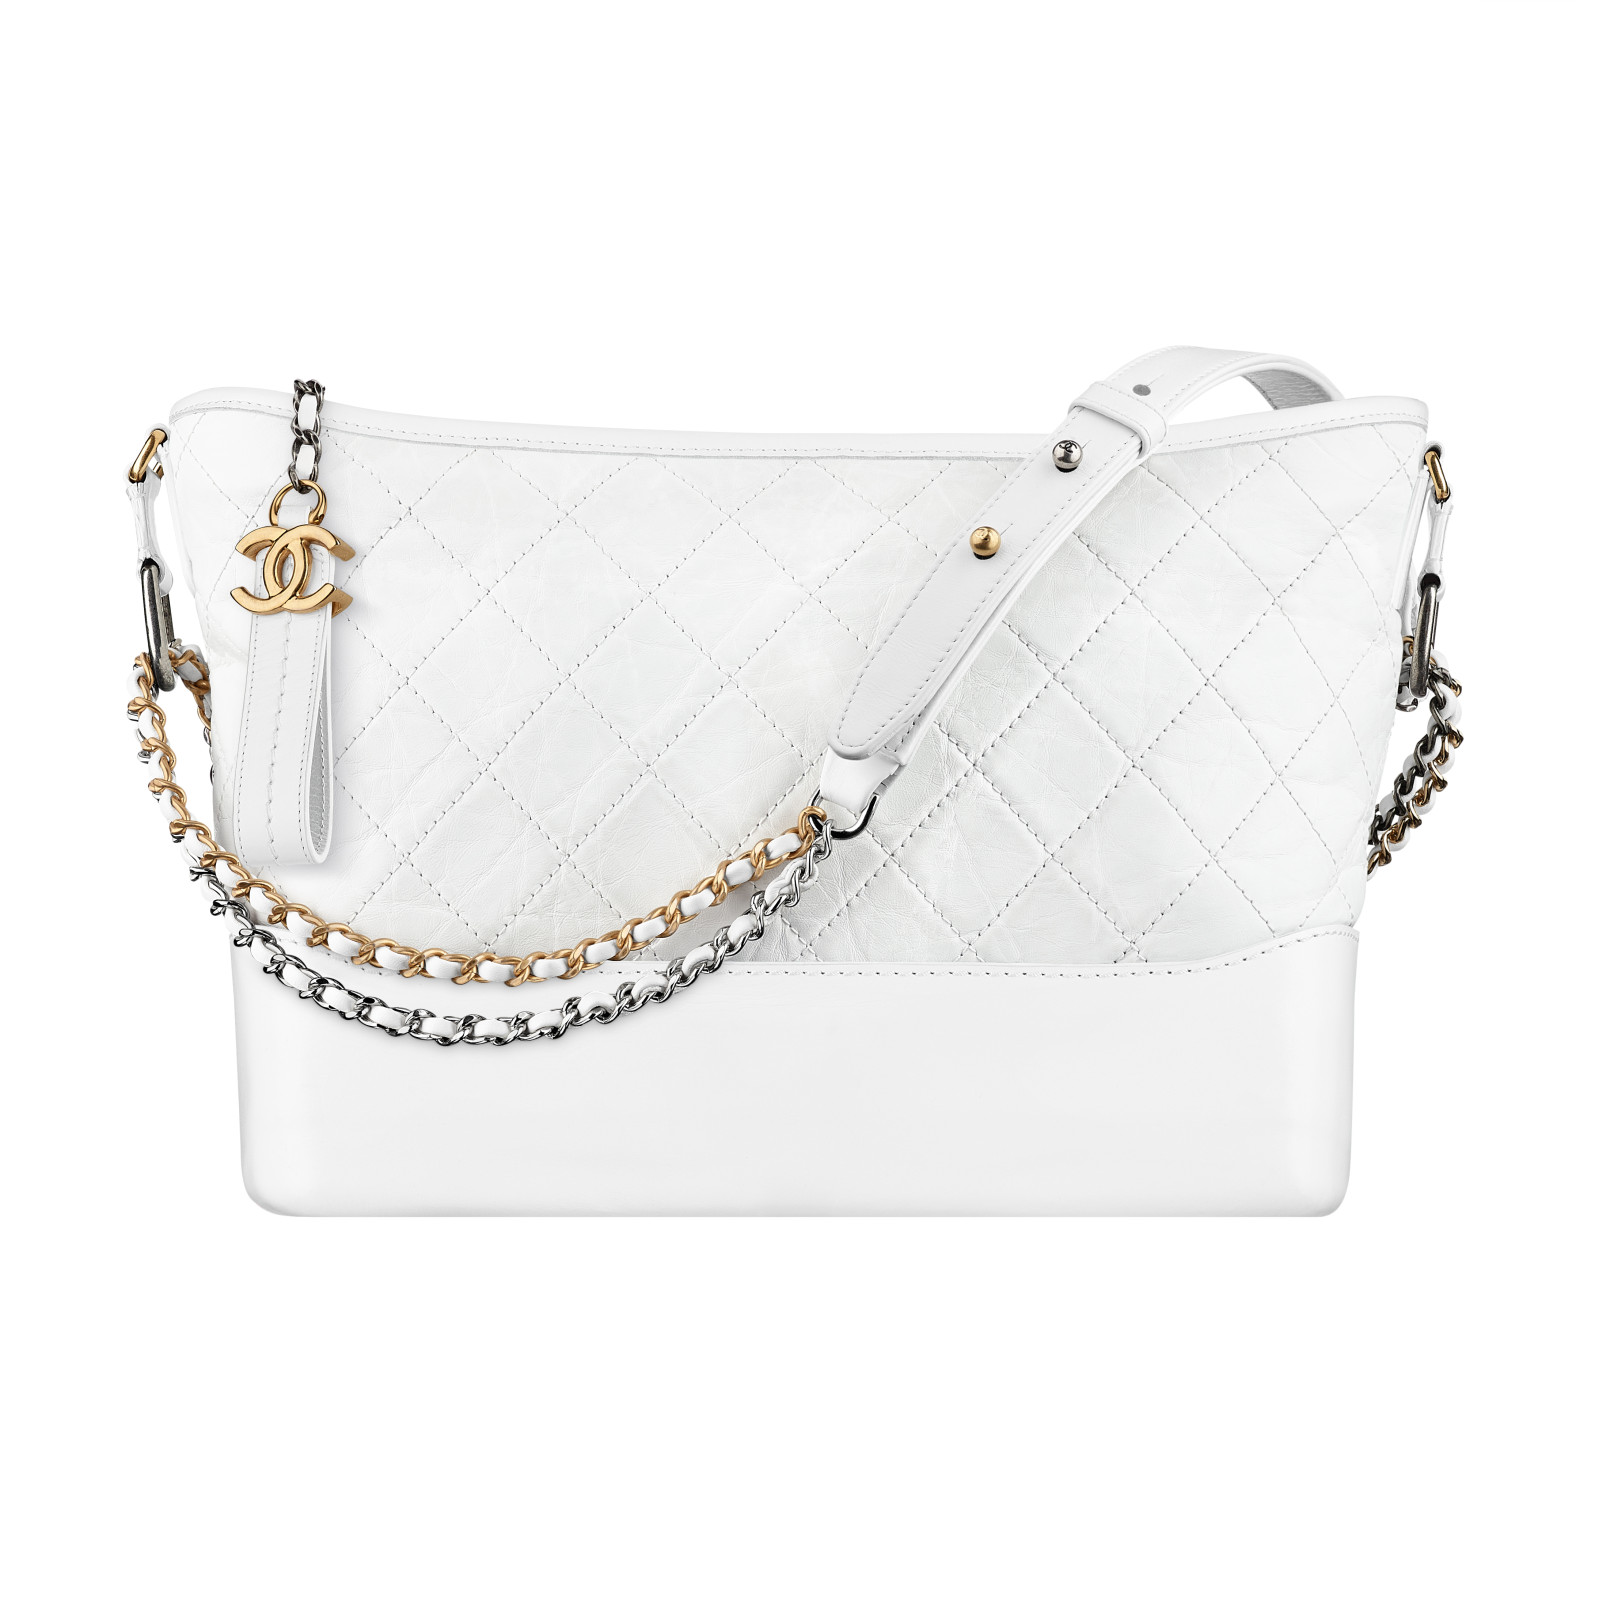 10_White-leather-handbag-A93824-Y61477-10601_HD